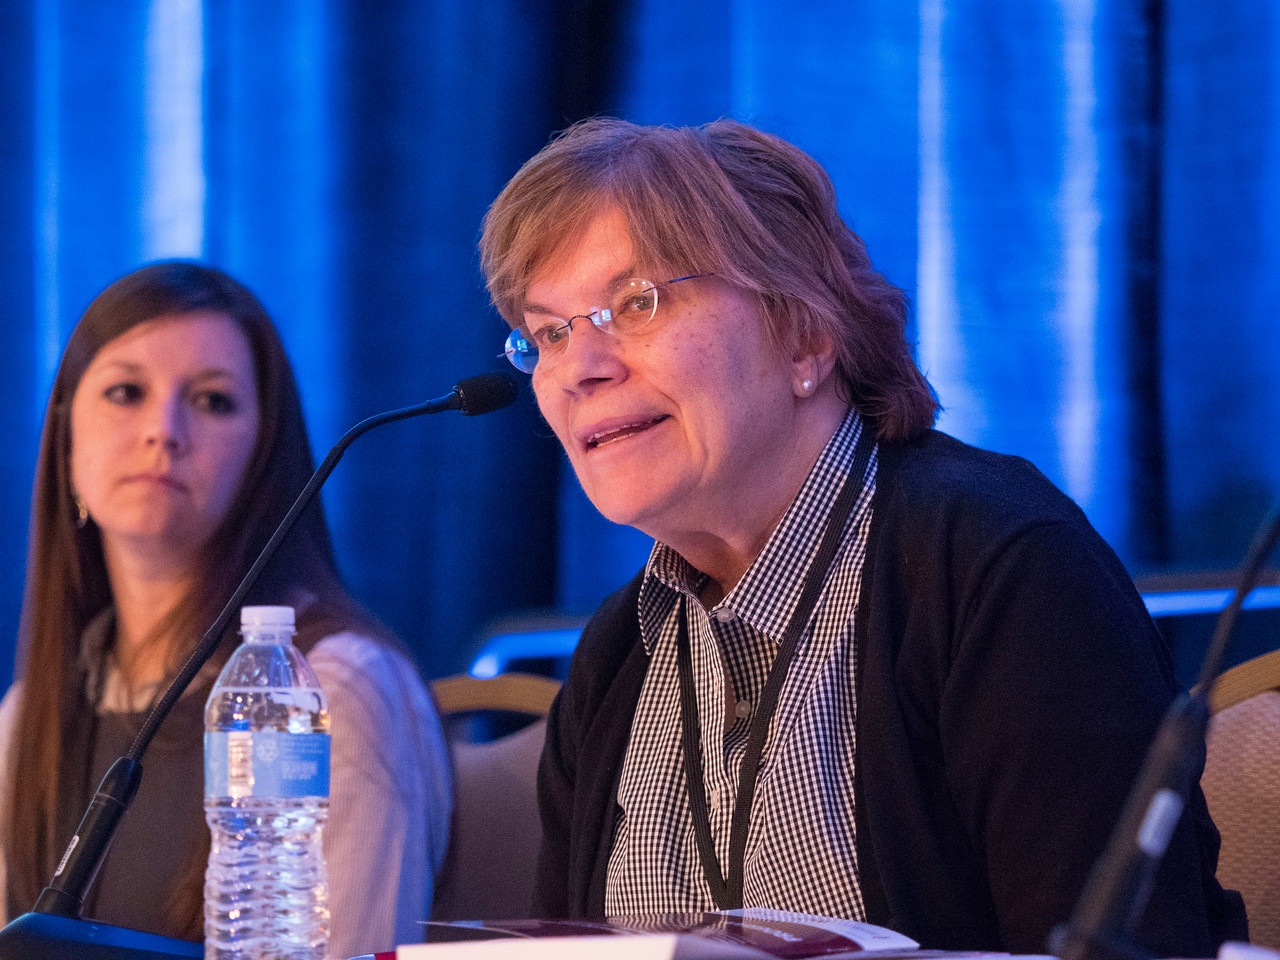 Rose C. Maly, MD, MSPH, presents Abstract 1  - General Session 1: Risk-Based Health Care of Cancer Survivors in the 21st Century